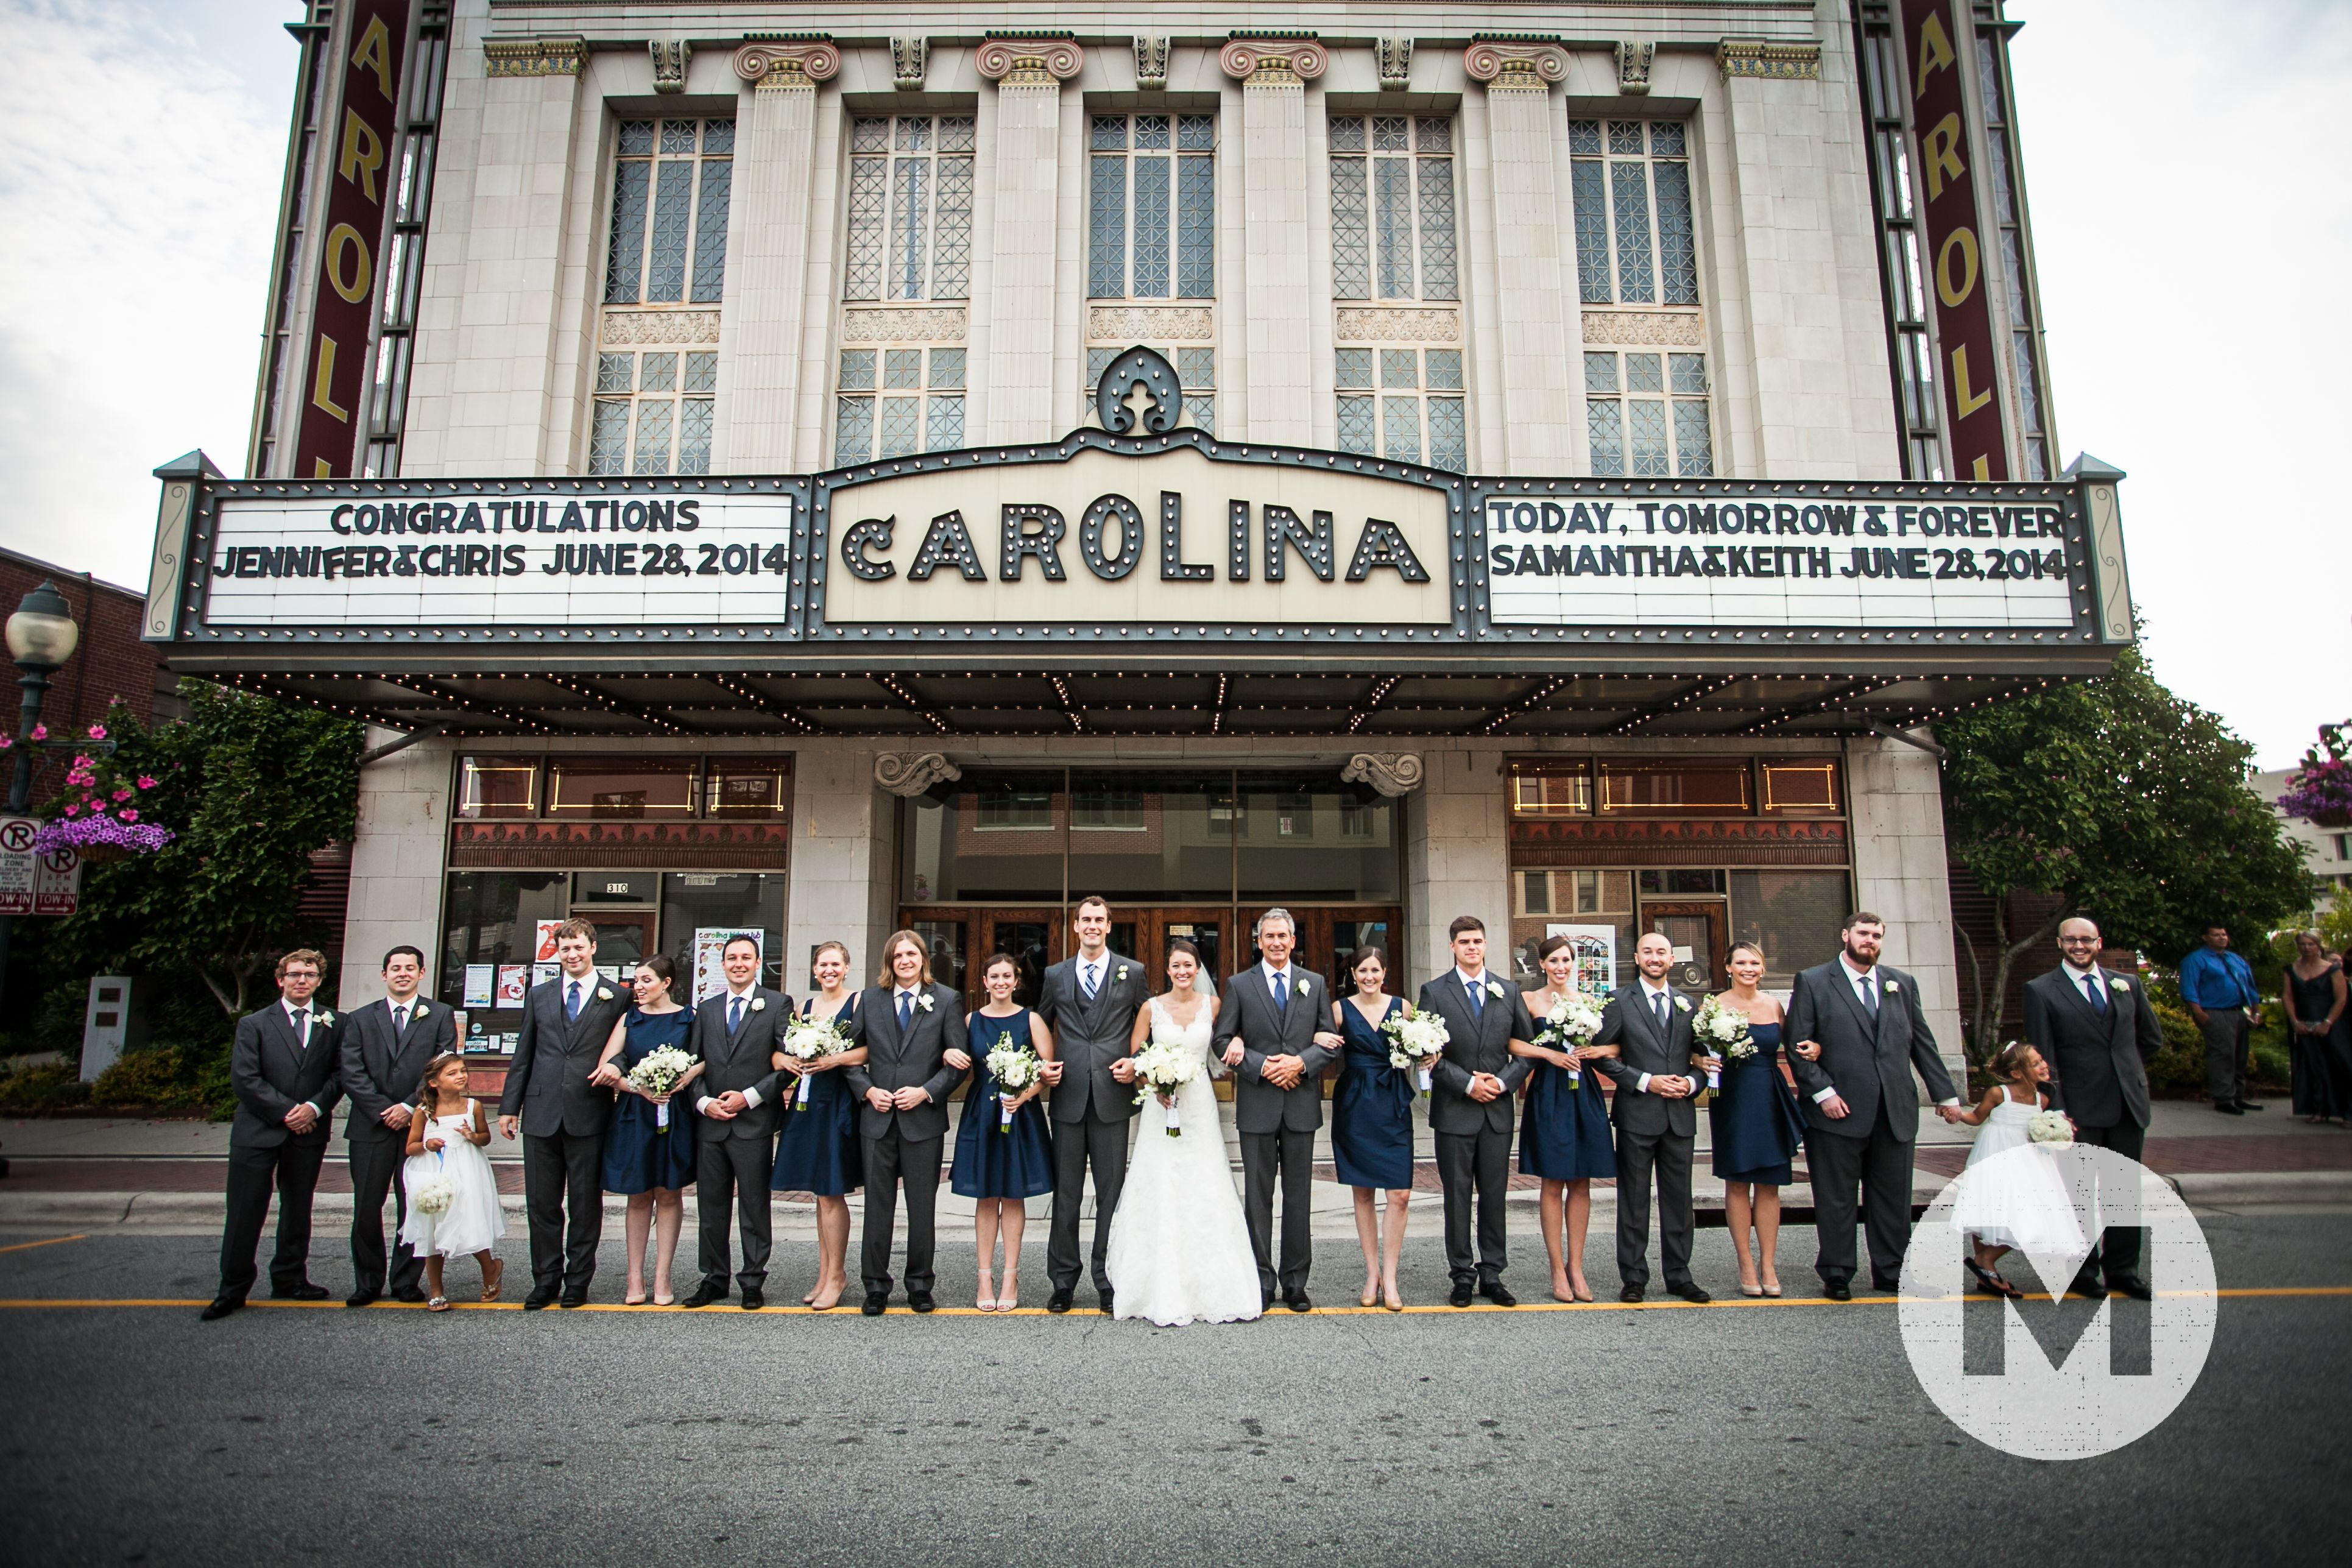 Wedding Event Planning Coordination Based In Greensboro North Carolina And Planner Serving The Carolinas Including Raleigh